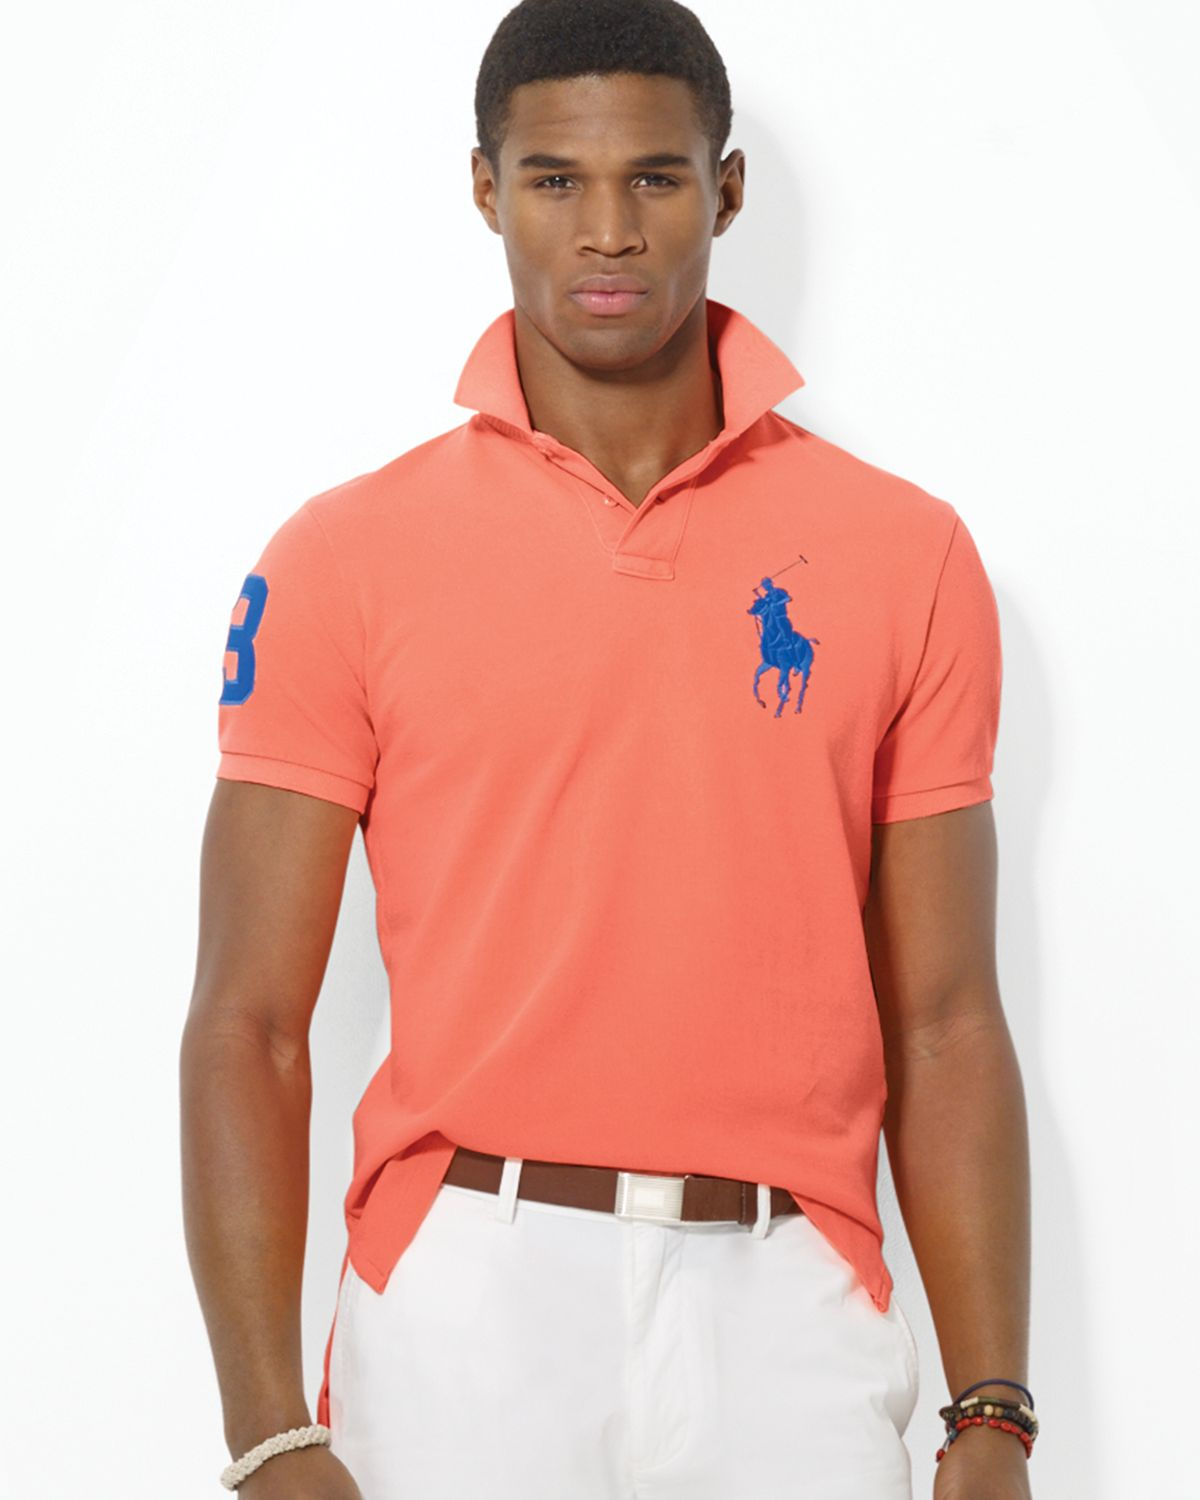 ralph lauren mesh polo shirts for men on sale - Dr. E ...